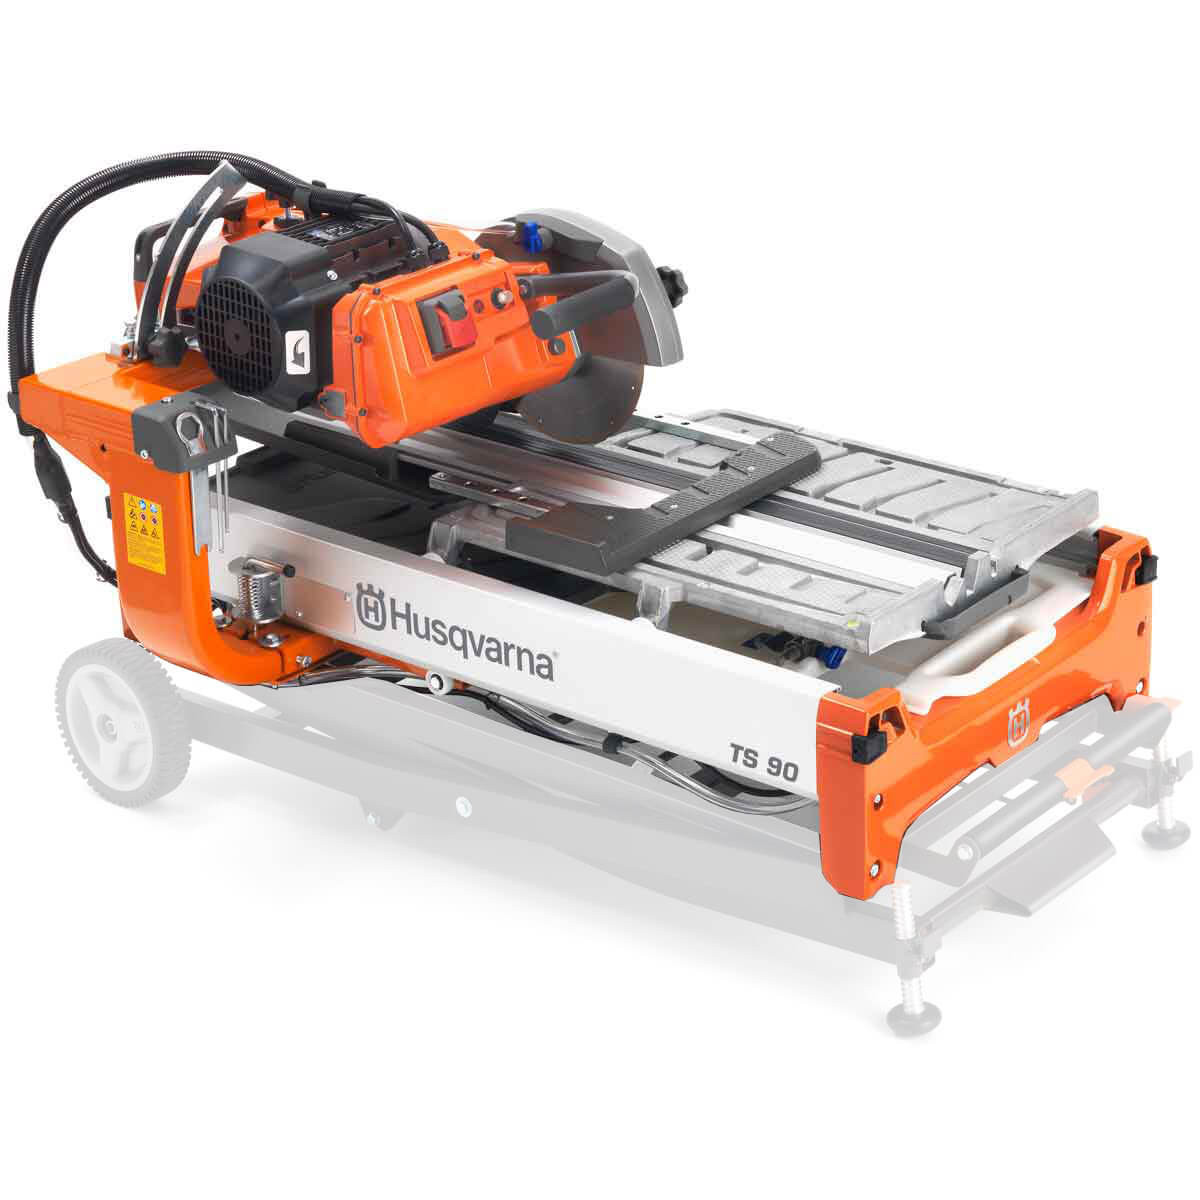 Husqvarna TS 90 Wet Tile Saw with collapsible stand